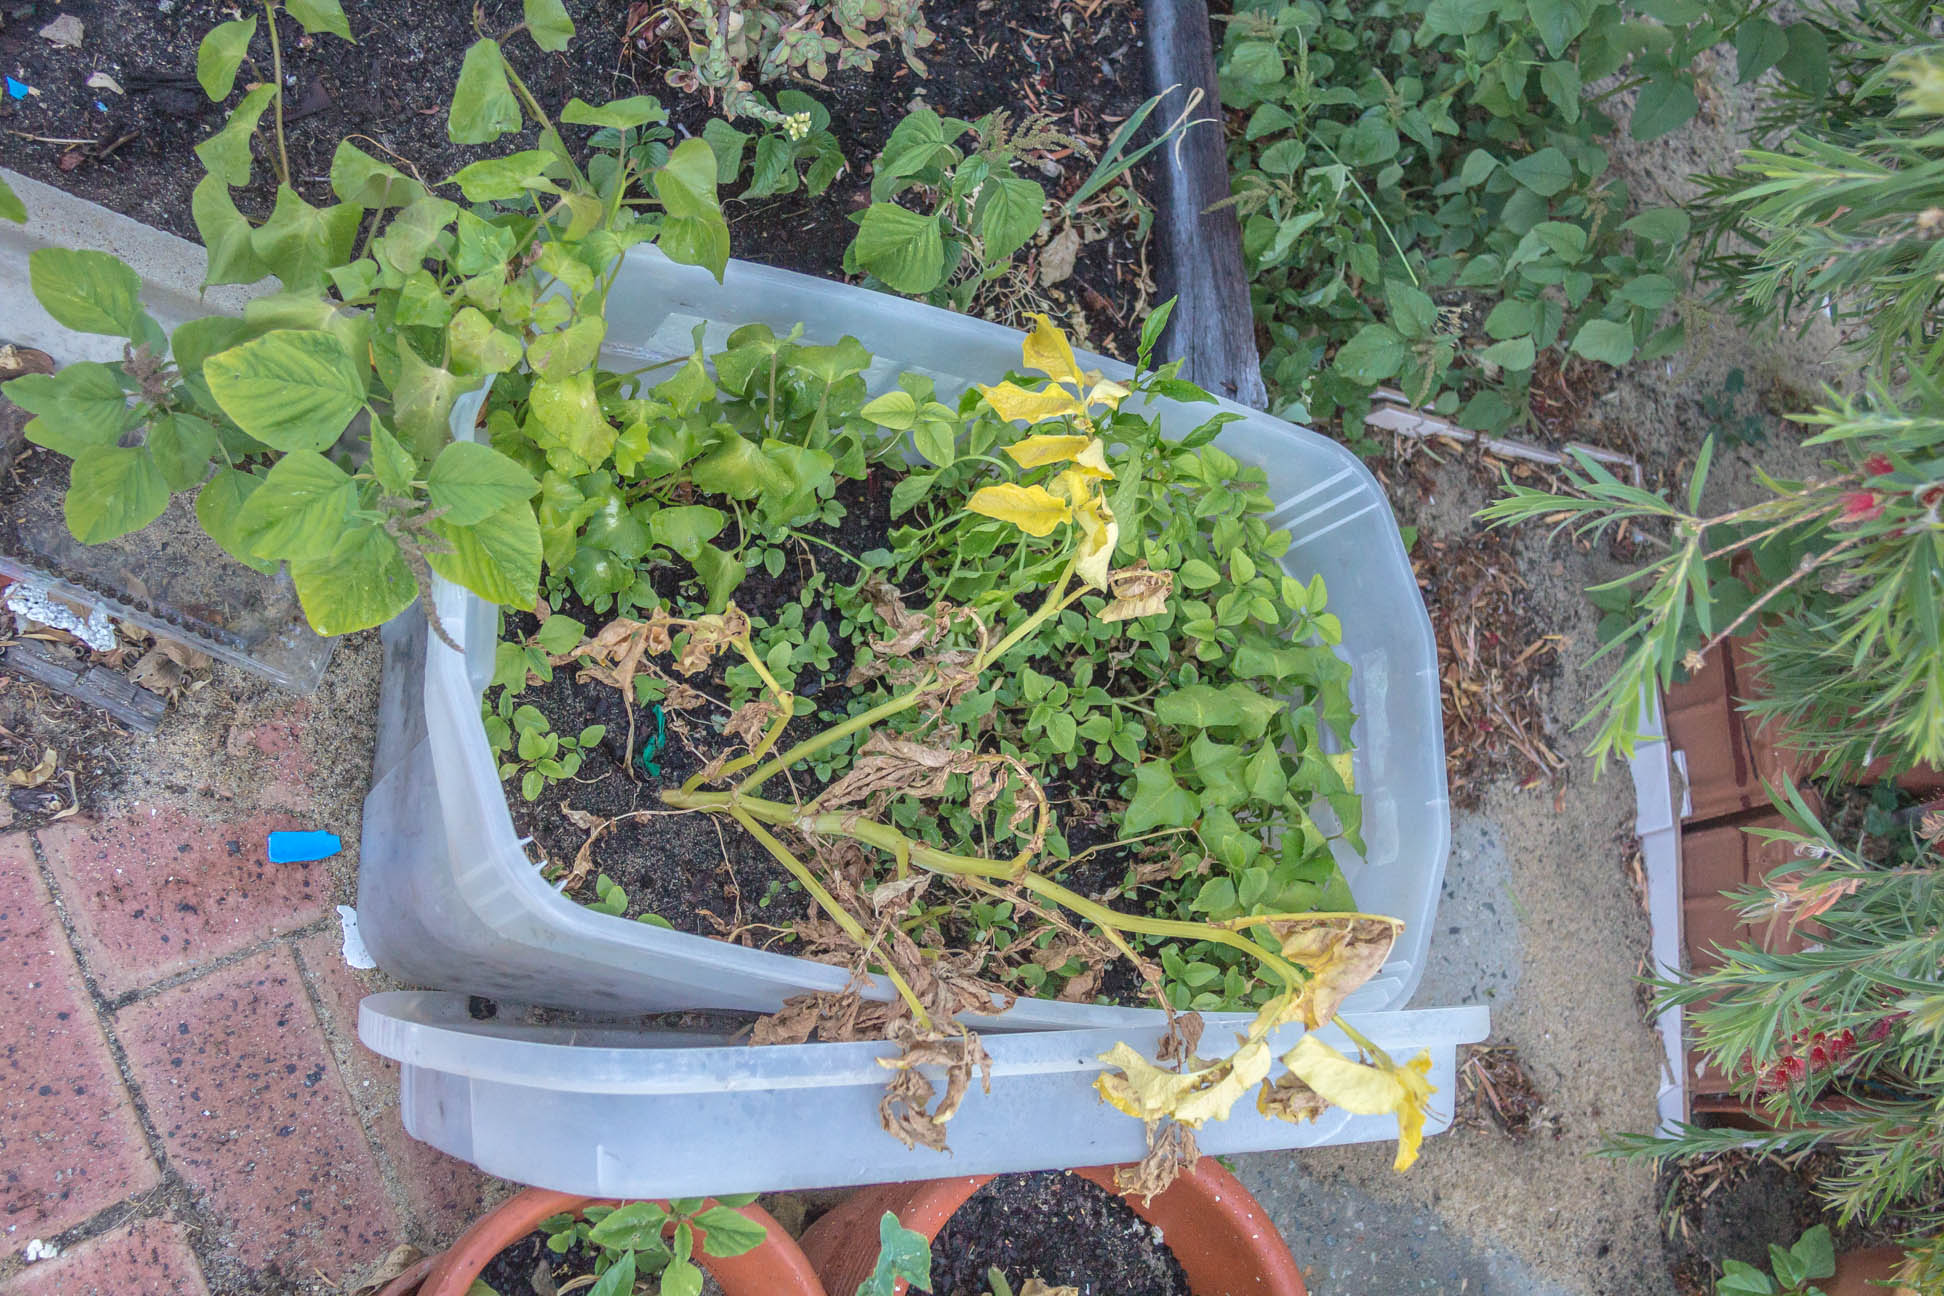 some potato plants growing not so well not sure if it is due to neglect and heat or just time to harvestin a re-used broken container with soil